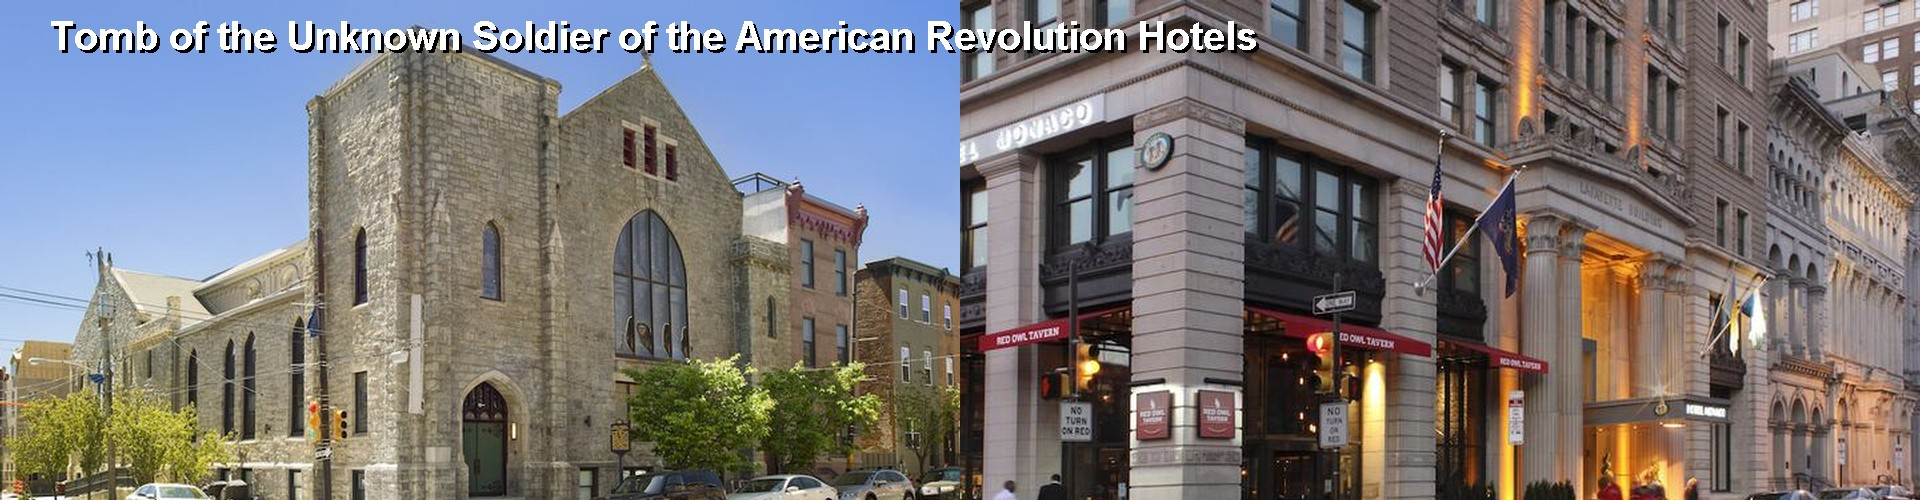 5 Best Hotels near Tomb of the Unknown Soldier of the American Revolution